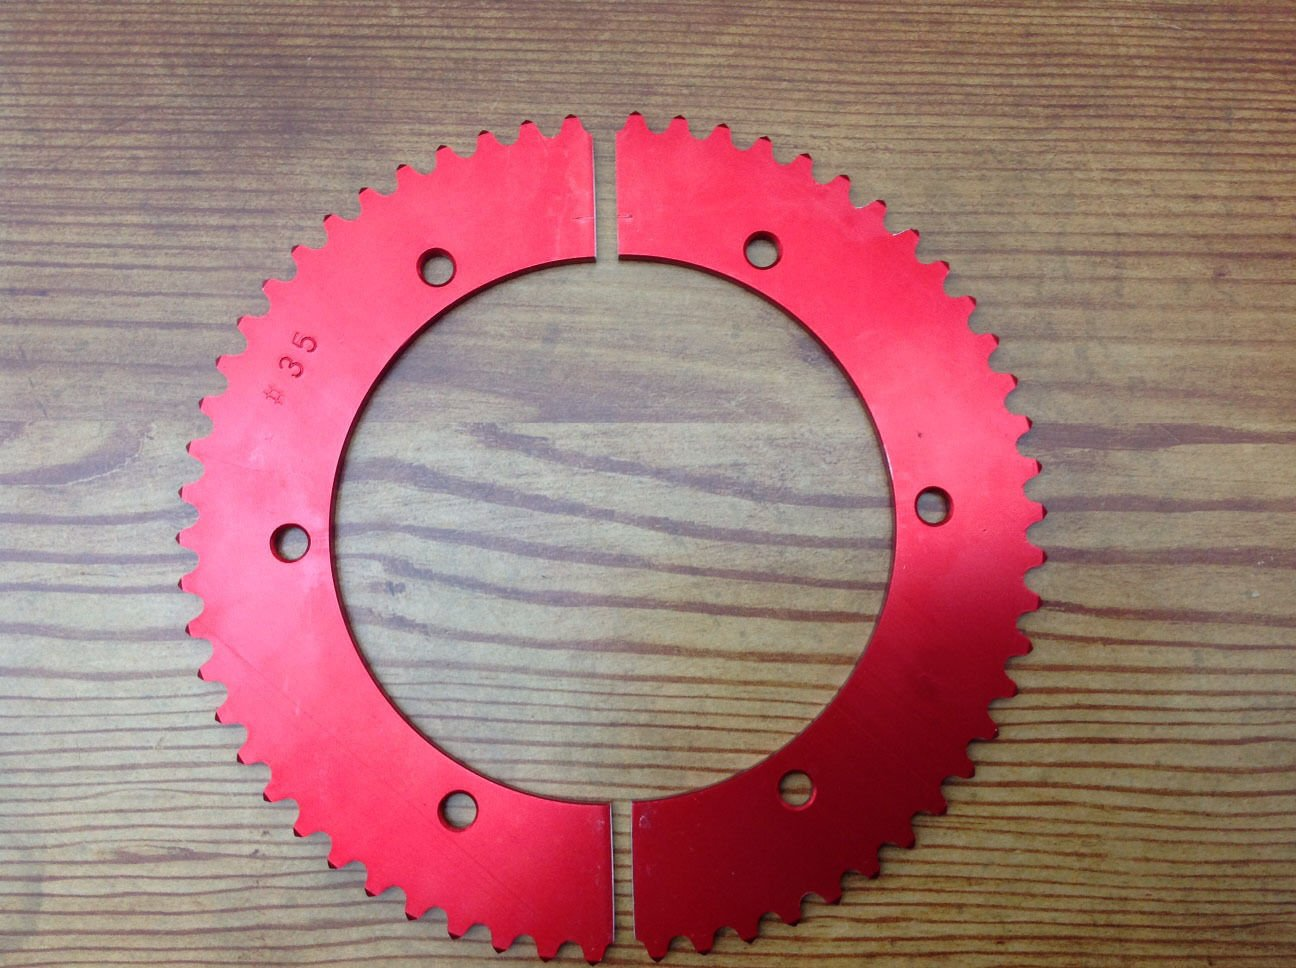 Go Kart Racing Sprocket - Aluminum 2-piece - For Use with #35 Chain (72, Red)